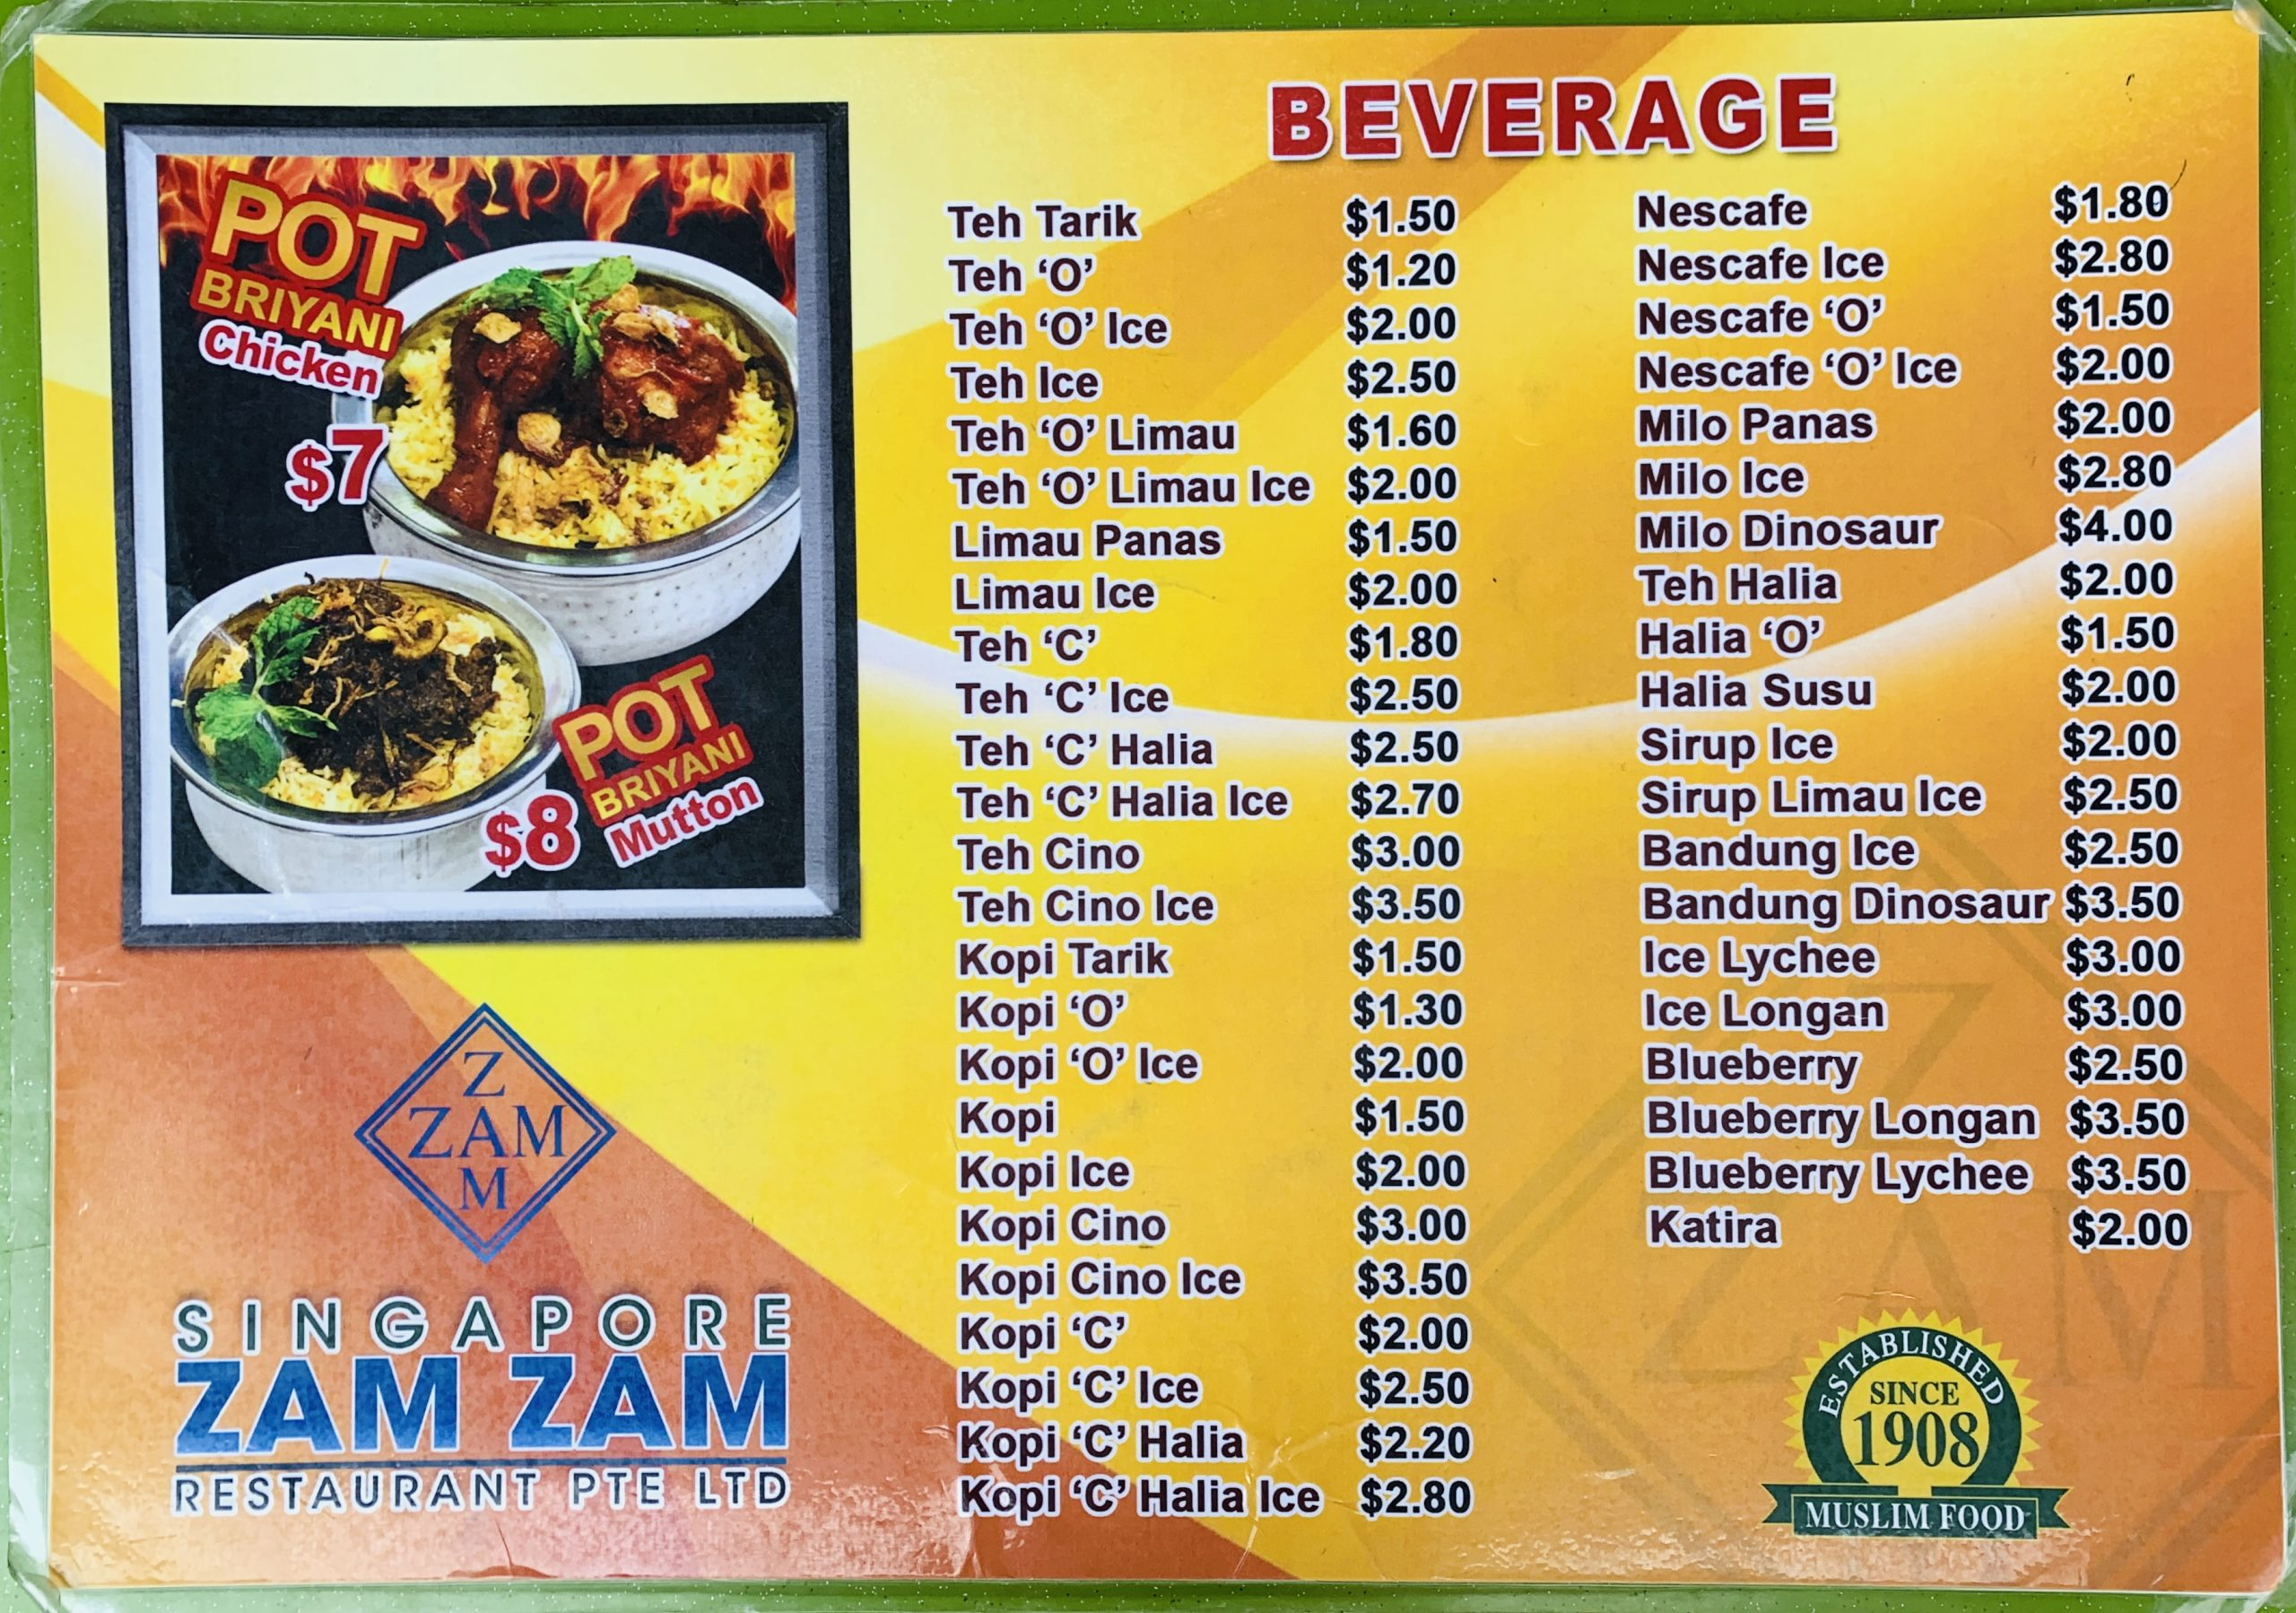 Singapore Zam Zam - Drinks Menu